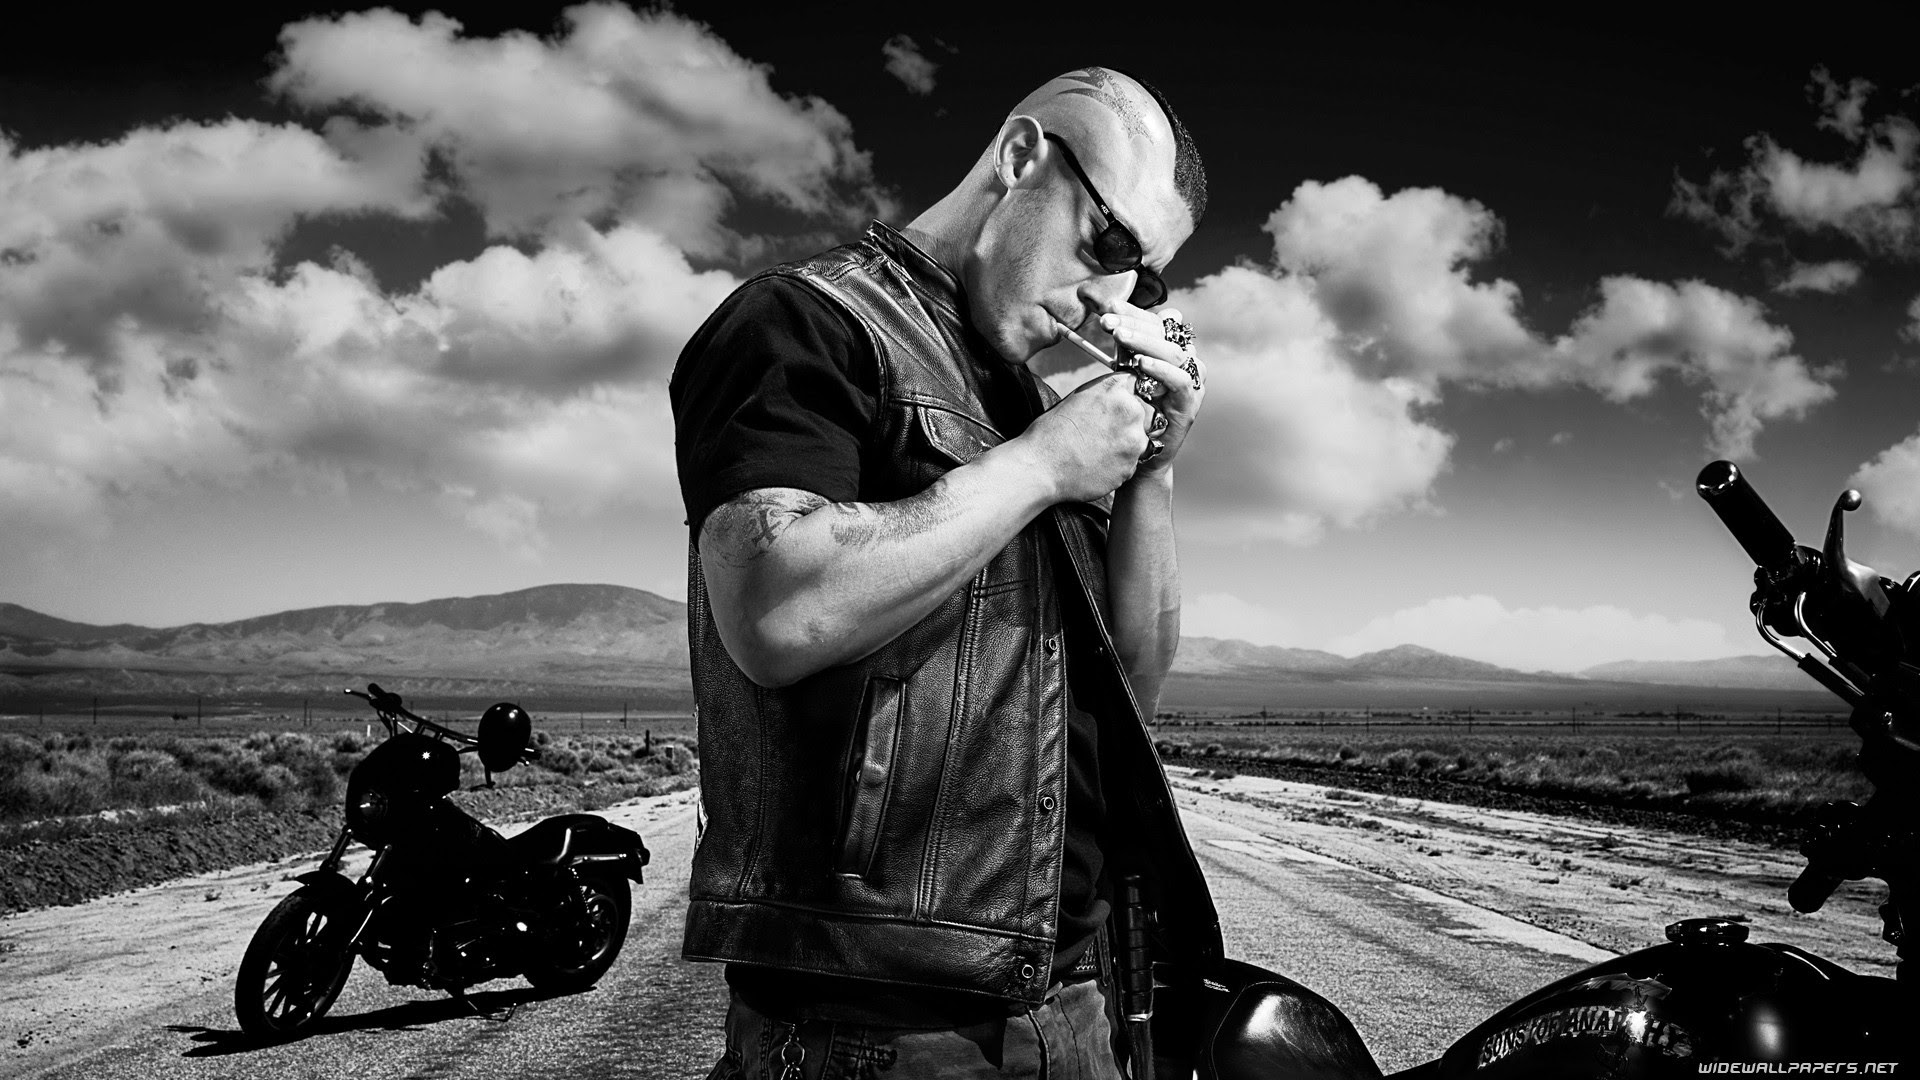 Sons Of Anarchy Monochrome Tv Series 1920x1080 Wallpaper